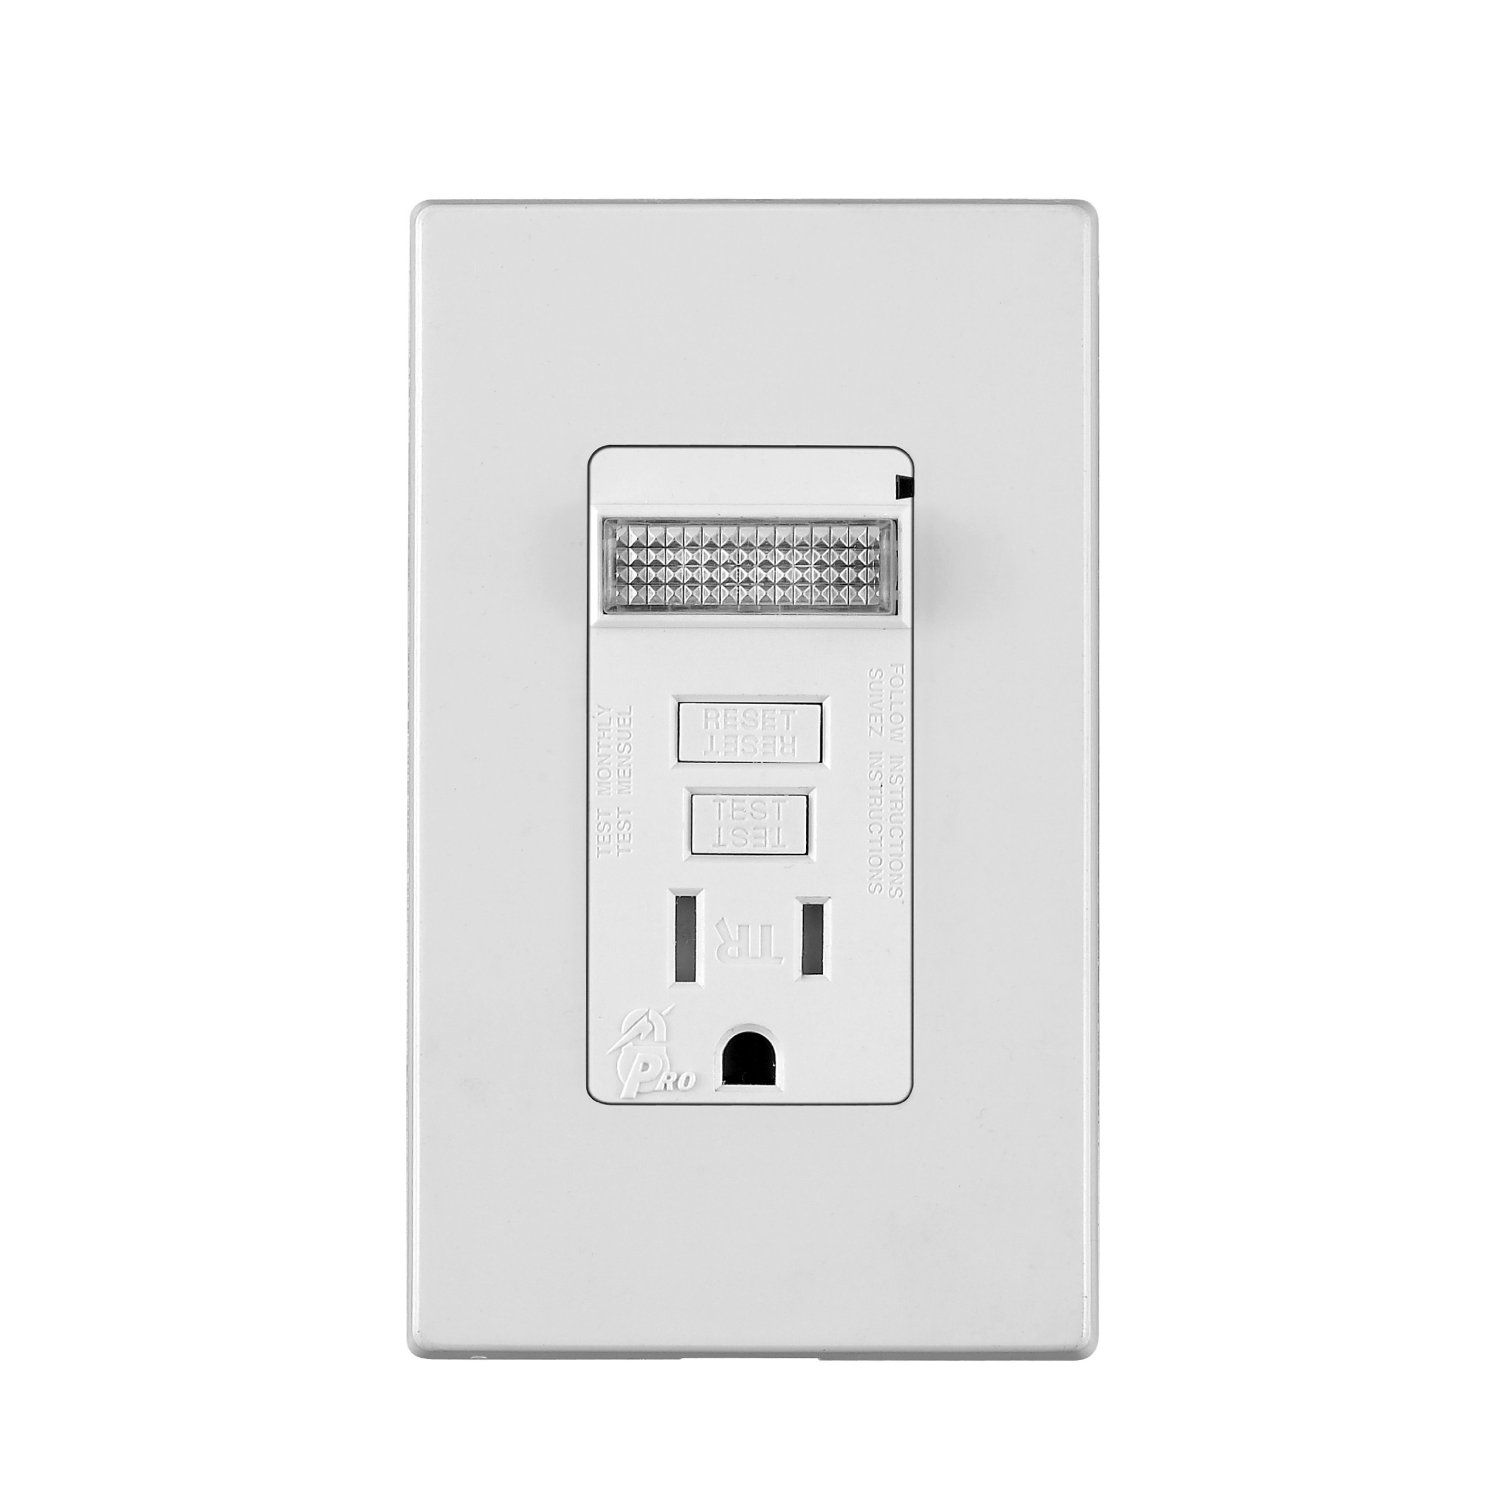 Amazoncom Leviton T7591 W 15 Amp 125 Volt Tamper Resistant Switch Schematic Combo Wiring Diagram Smartlockpro Combination Gfci Outlet With Sensor Guidelight Bathroom Vanity Height